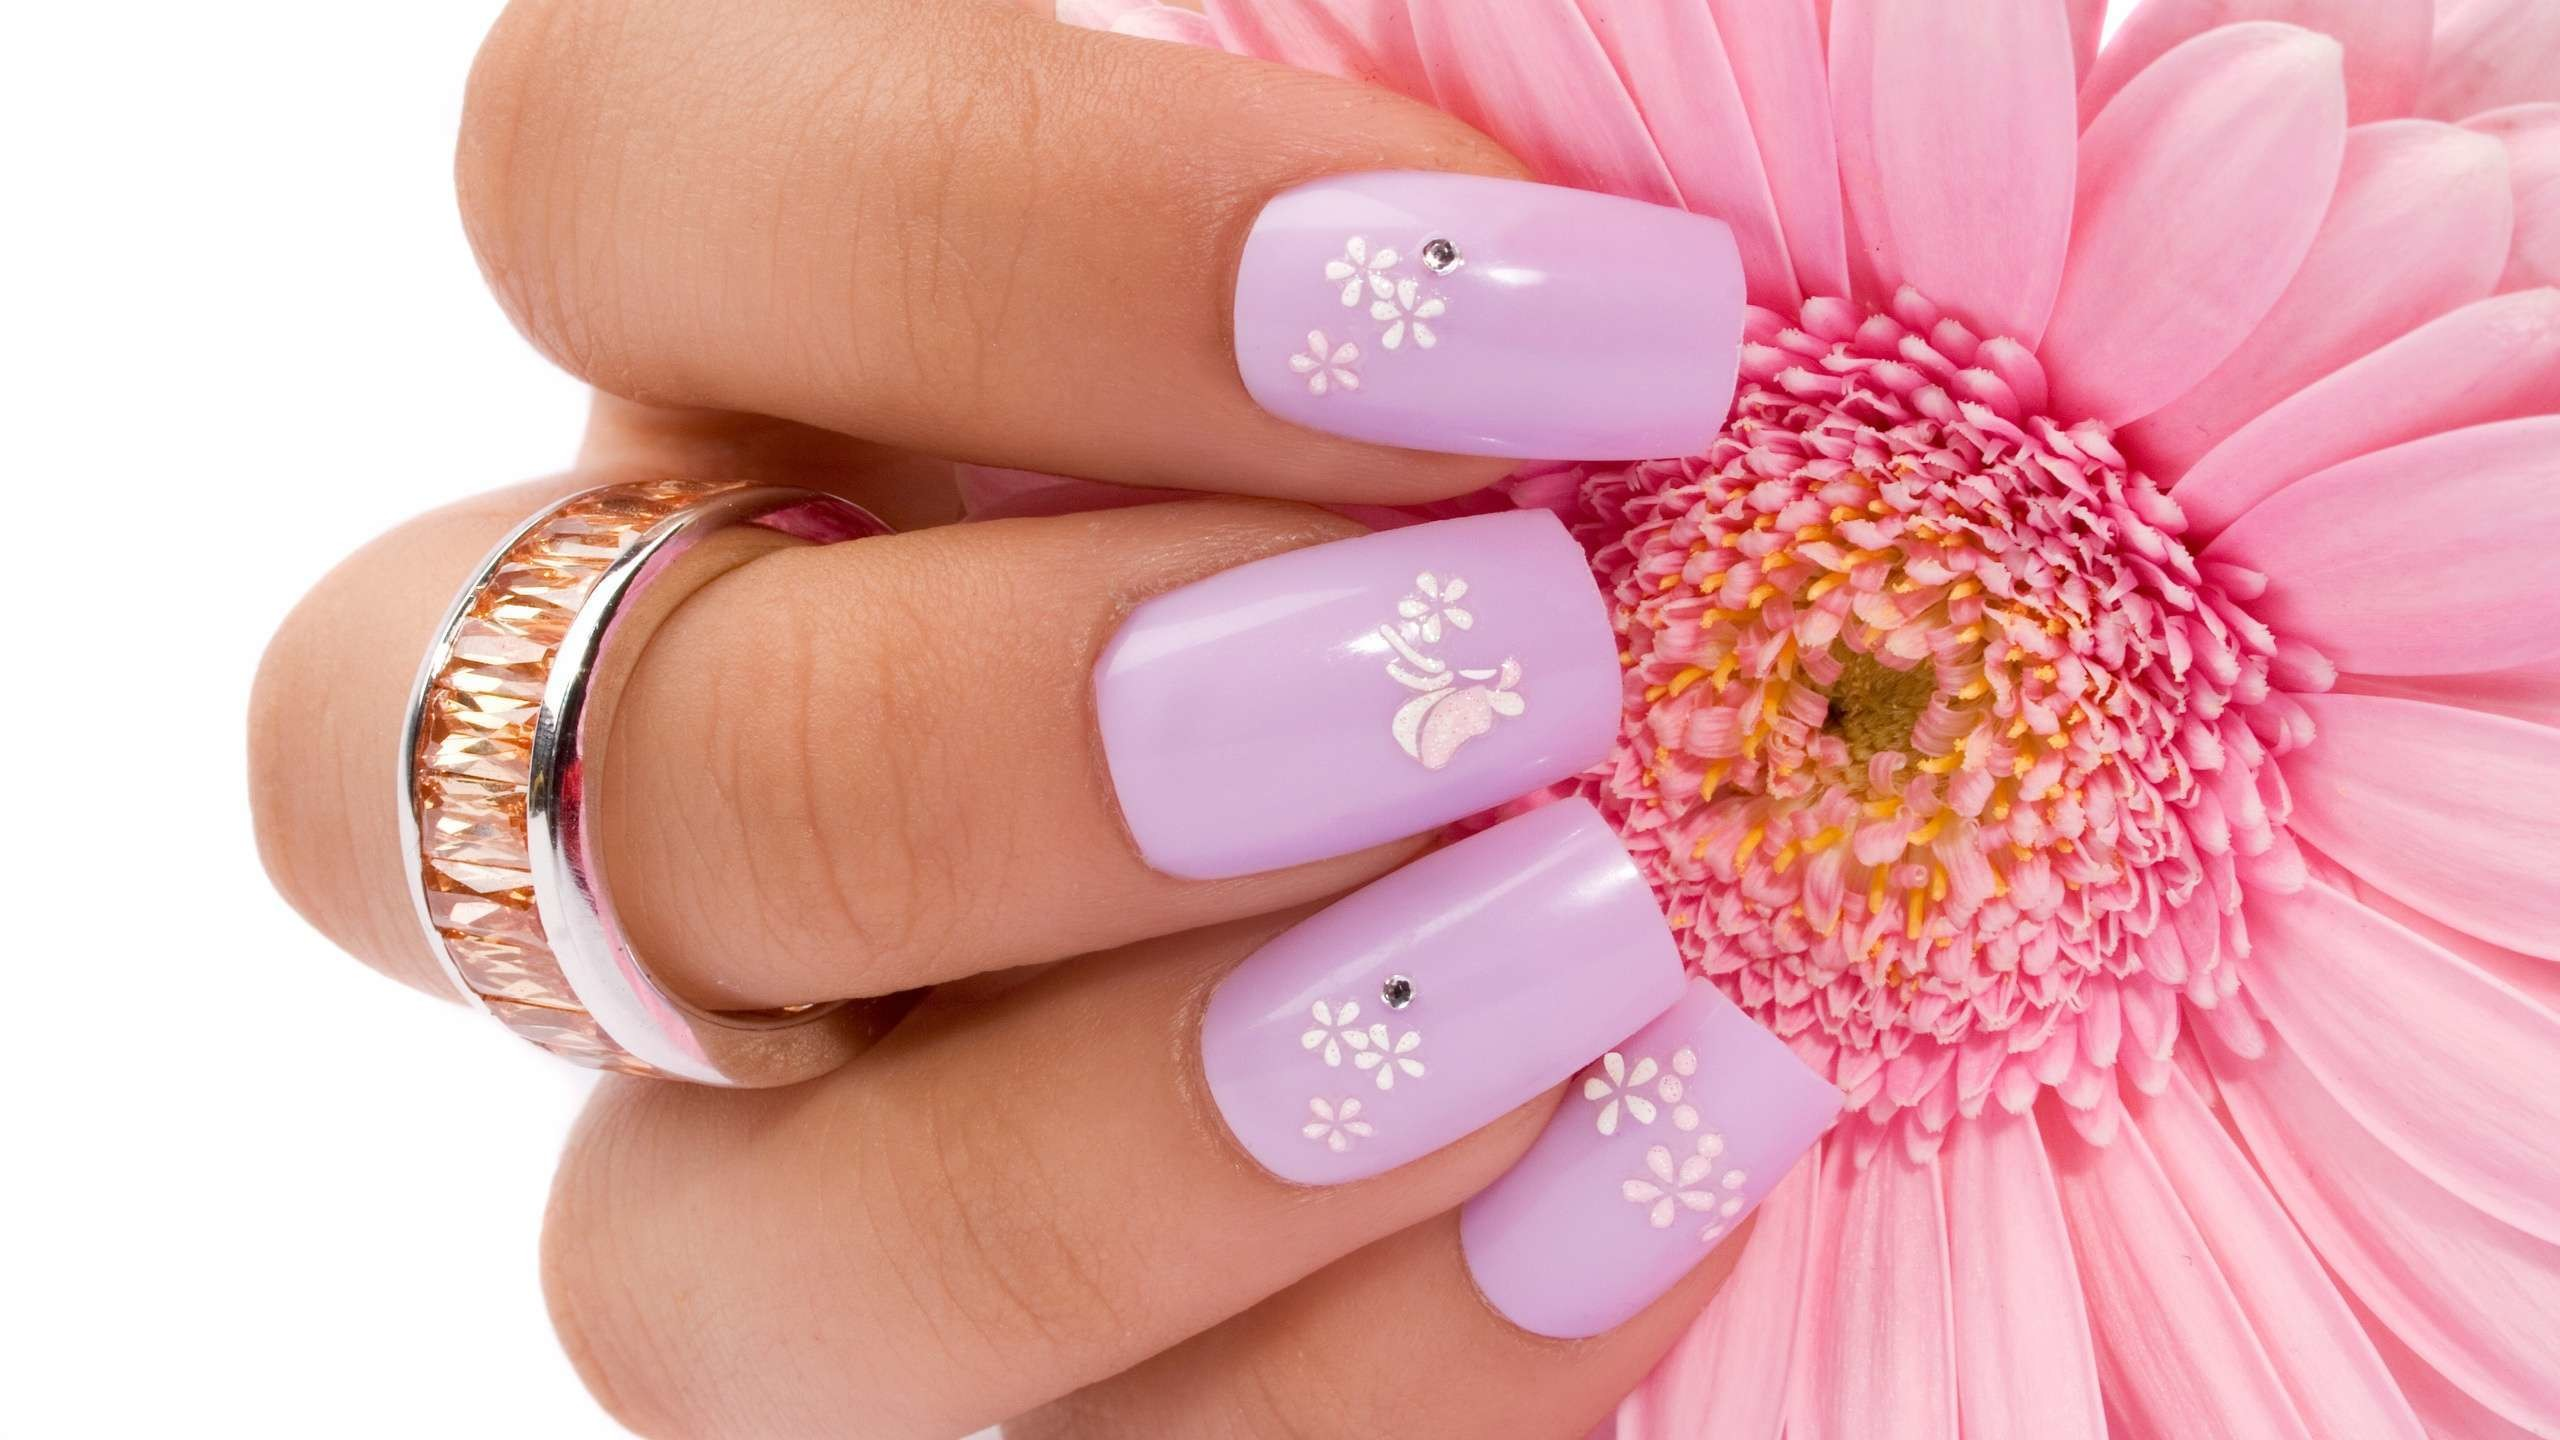 Nail art hd image download alleghany trees 2560x1440 nail art wallpapers by lucy rahman prinsesfo Images